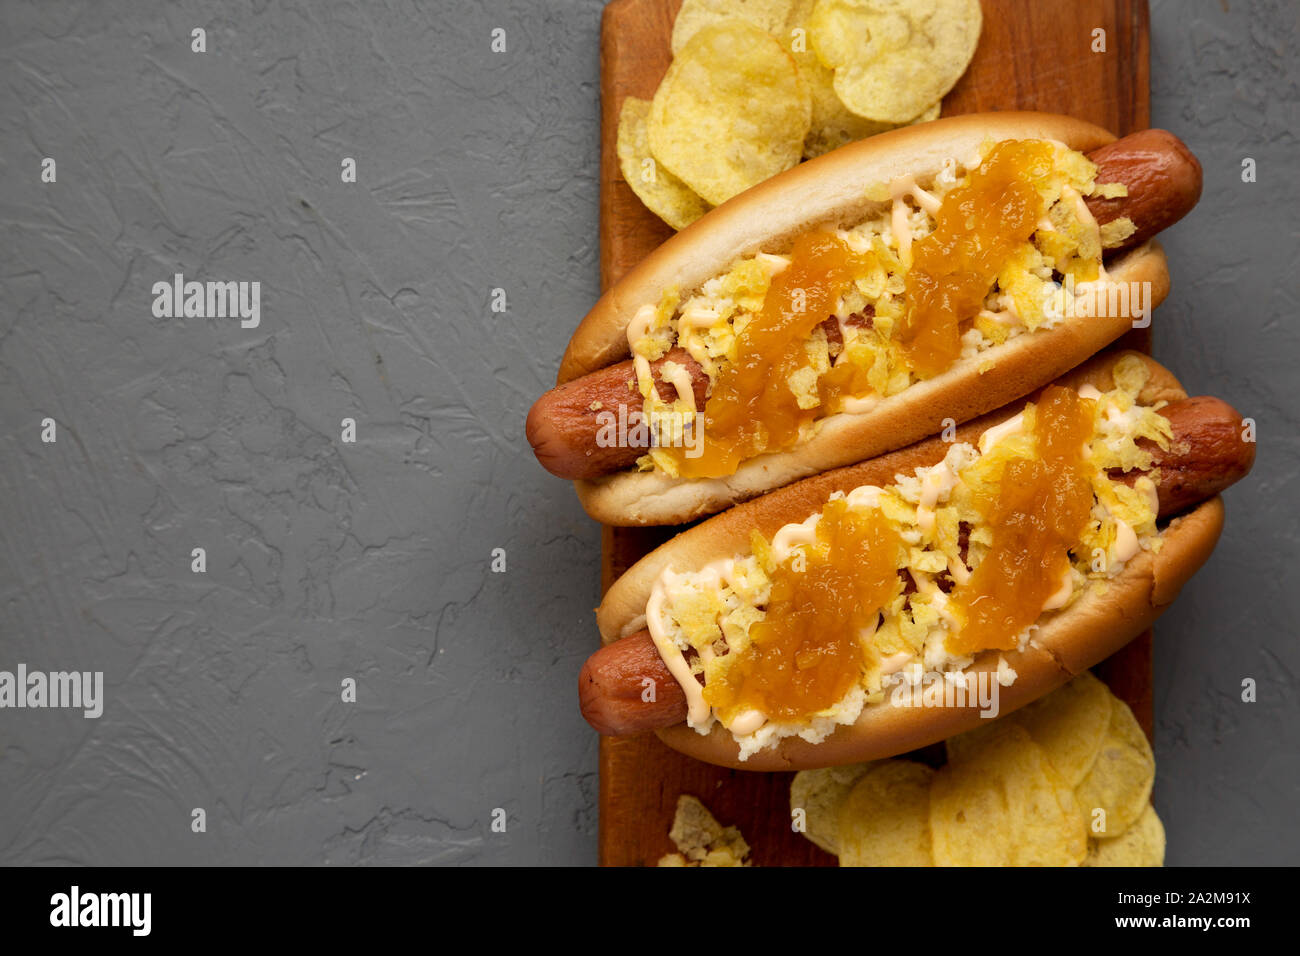 Homemade colombian hot dogs with pineapple sauce, chips and mayo ketchup on a rustic wooden board on a concrete background. Flat lay, from above, top Stock Photo